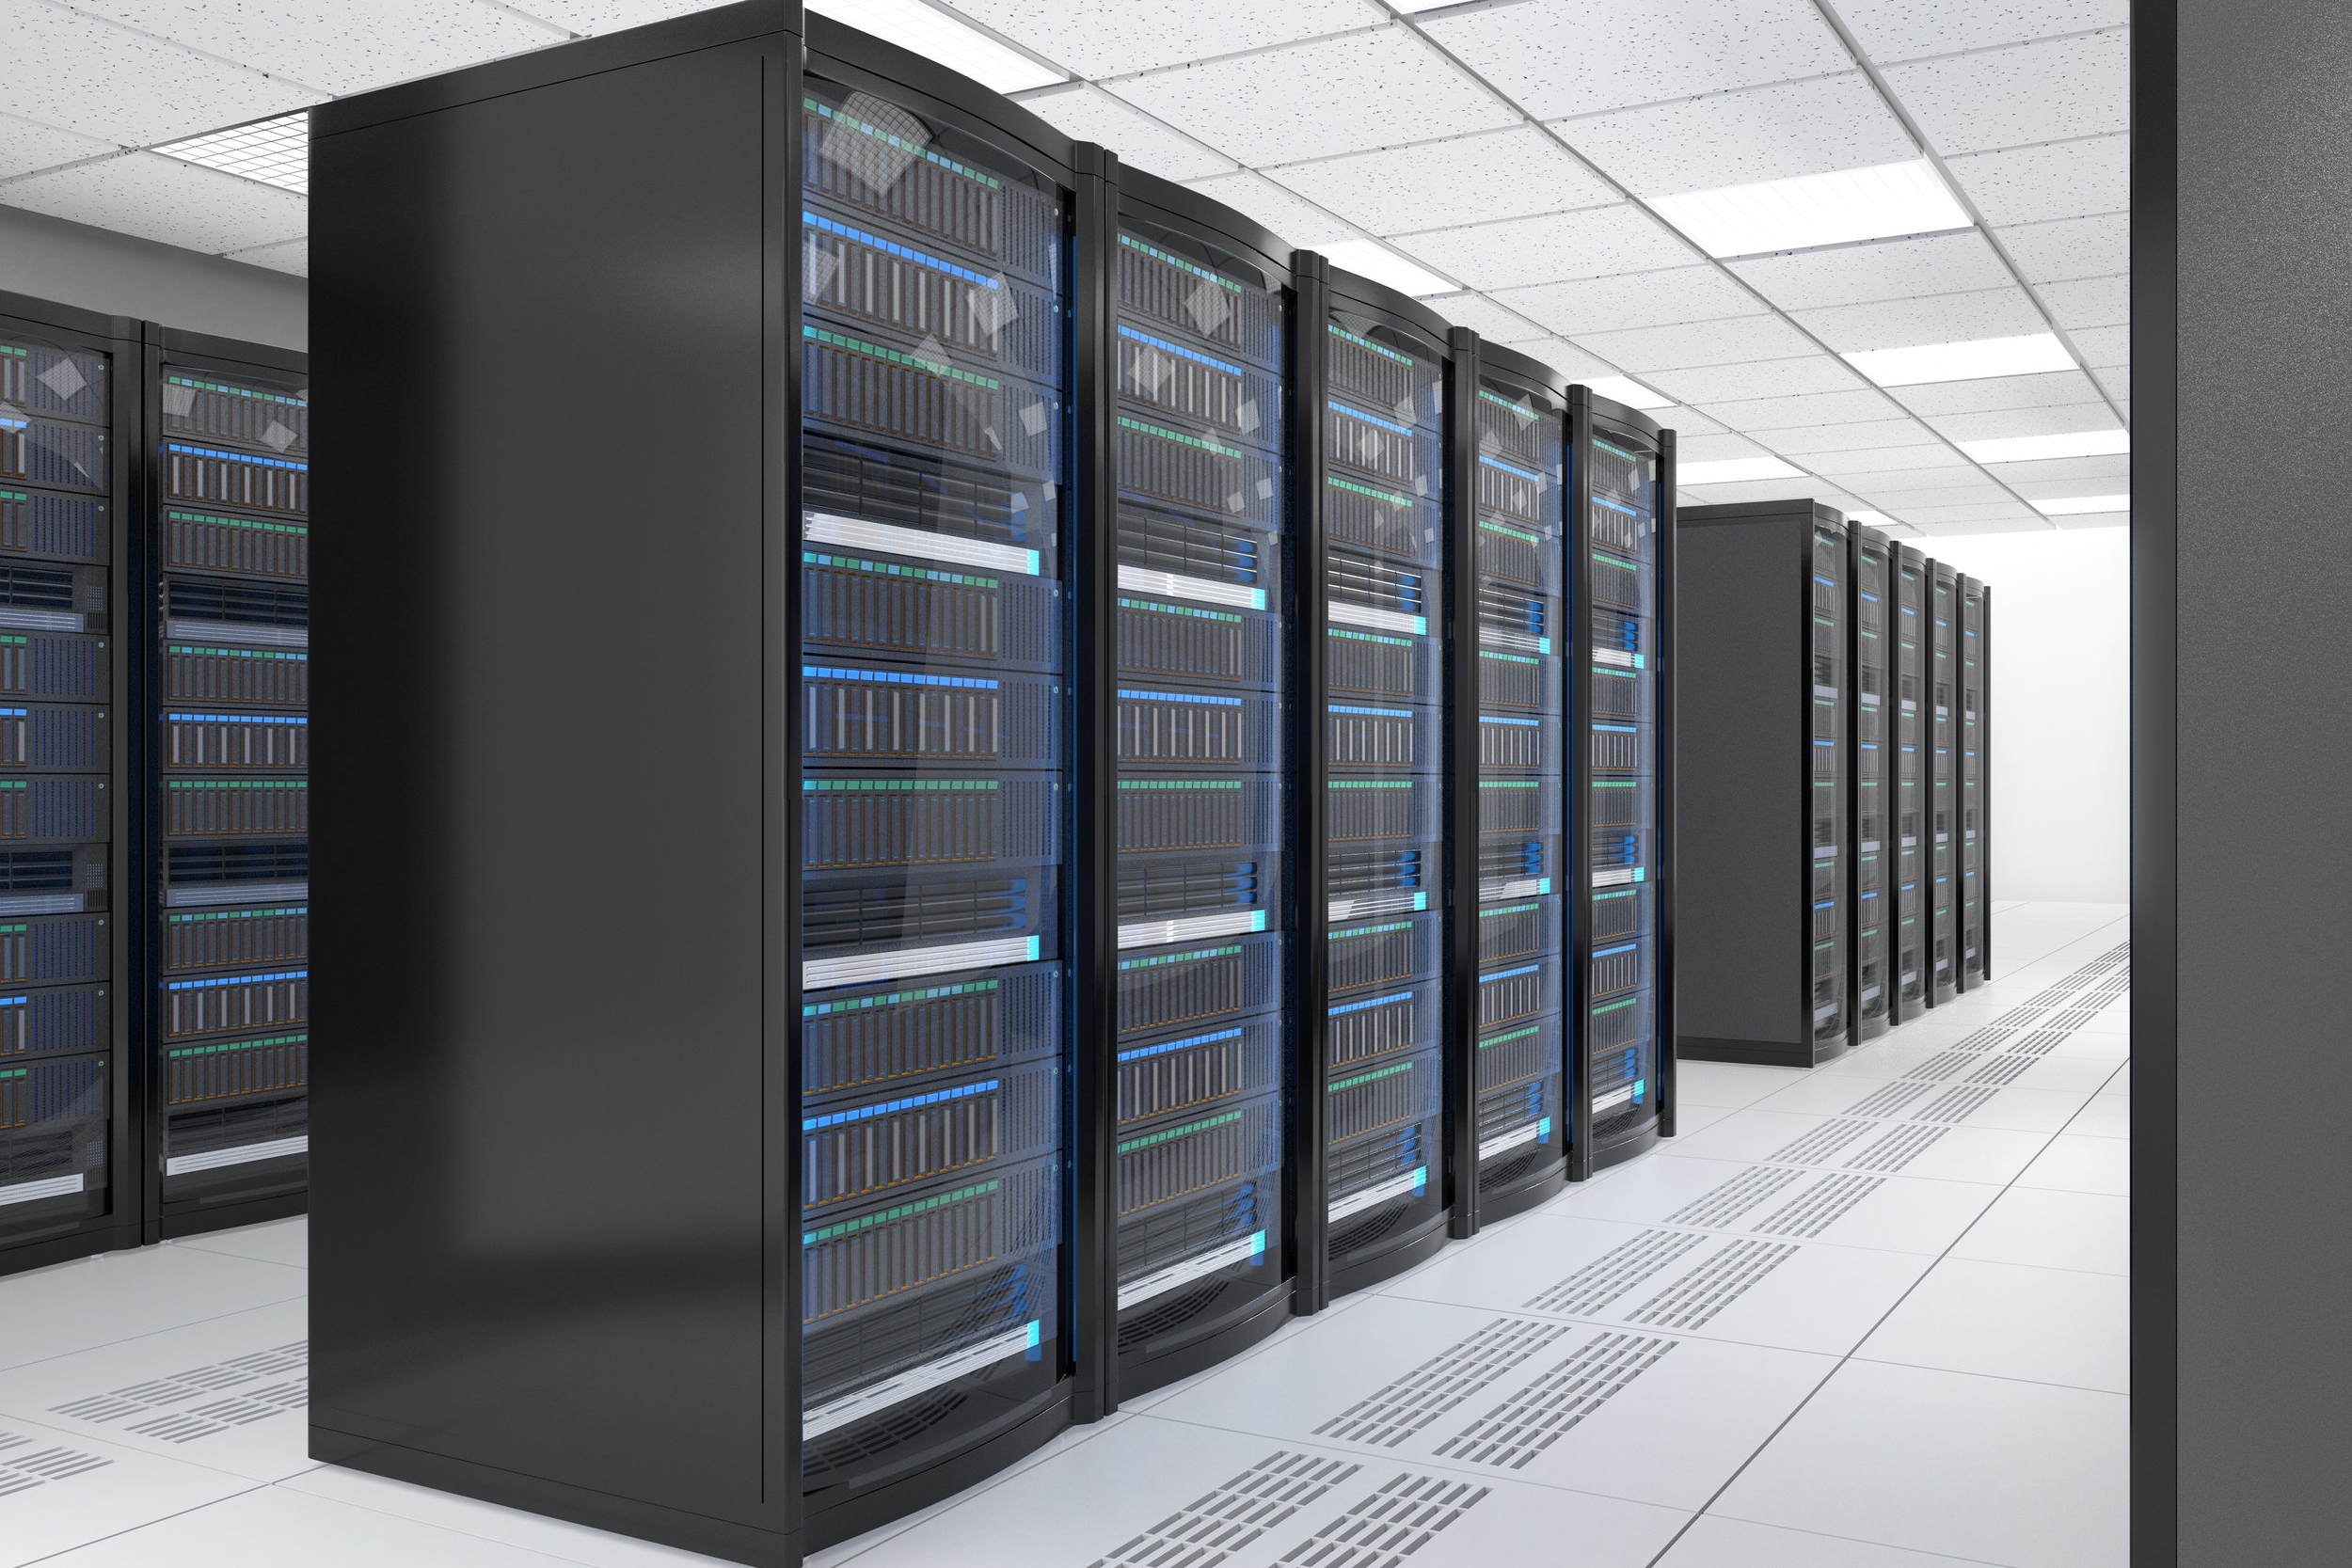 Mission Critical/Data Centers